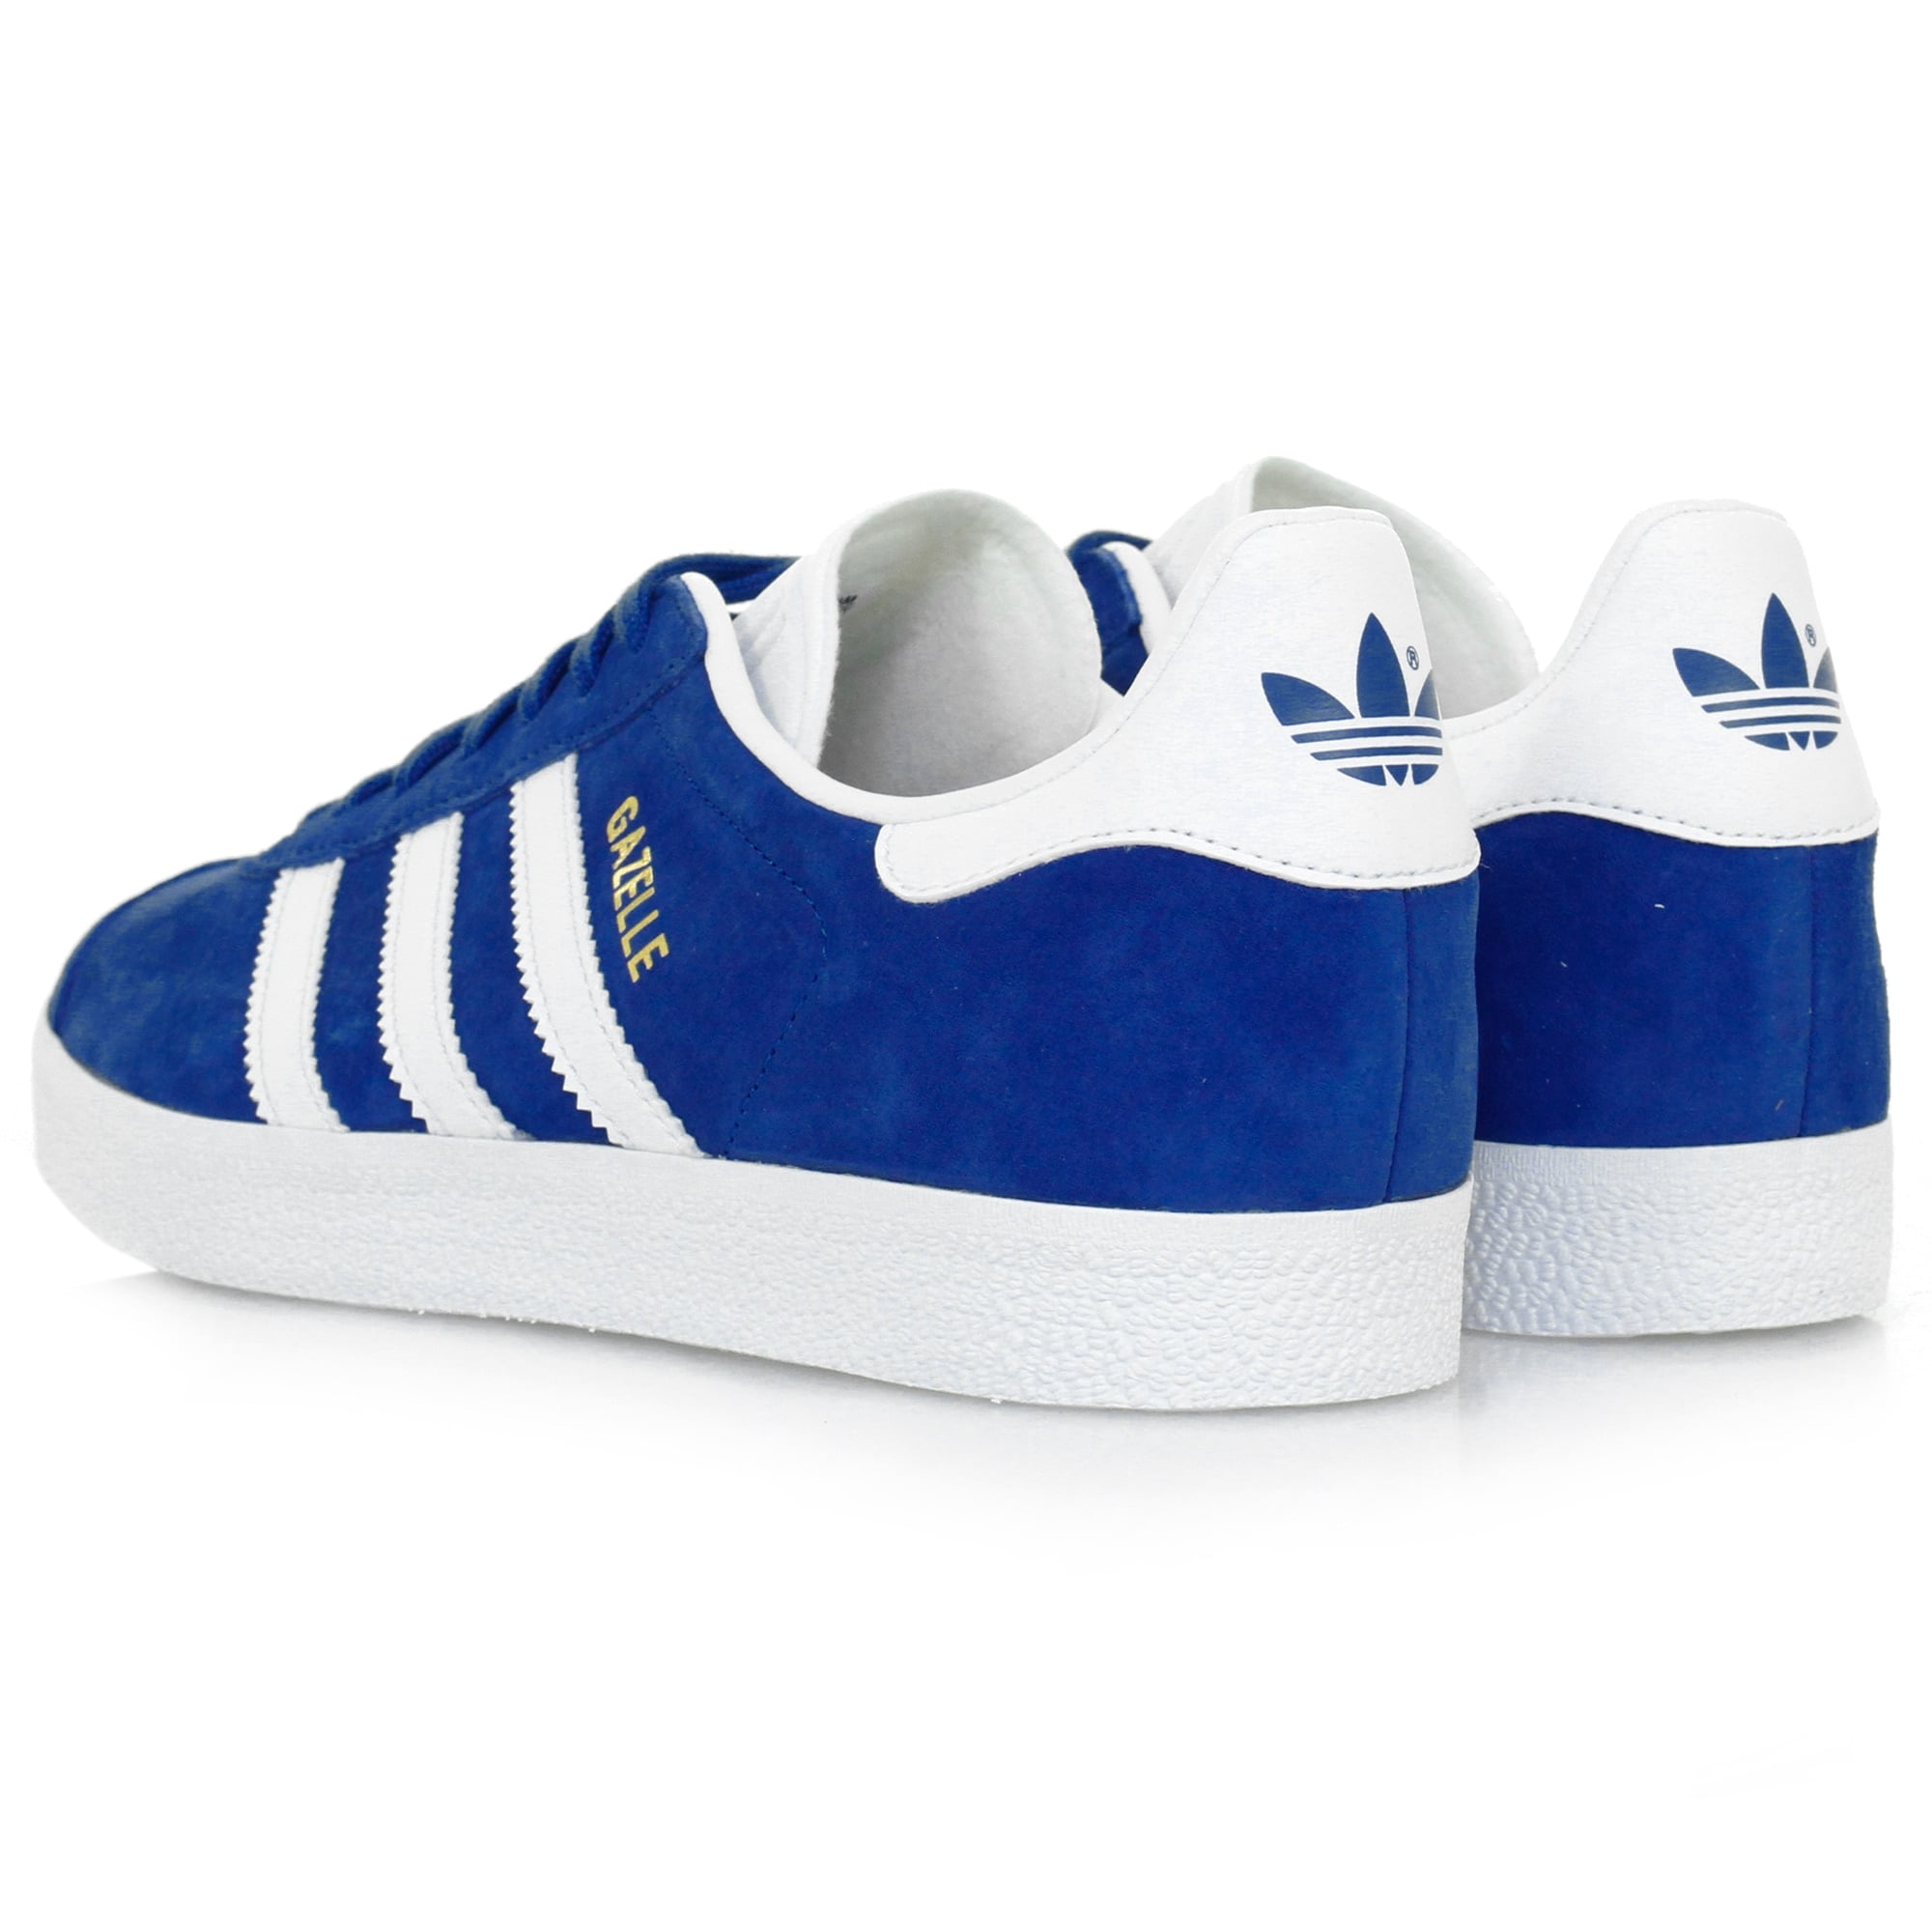 Adidas Gazelle Royal Blue Red